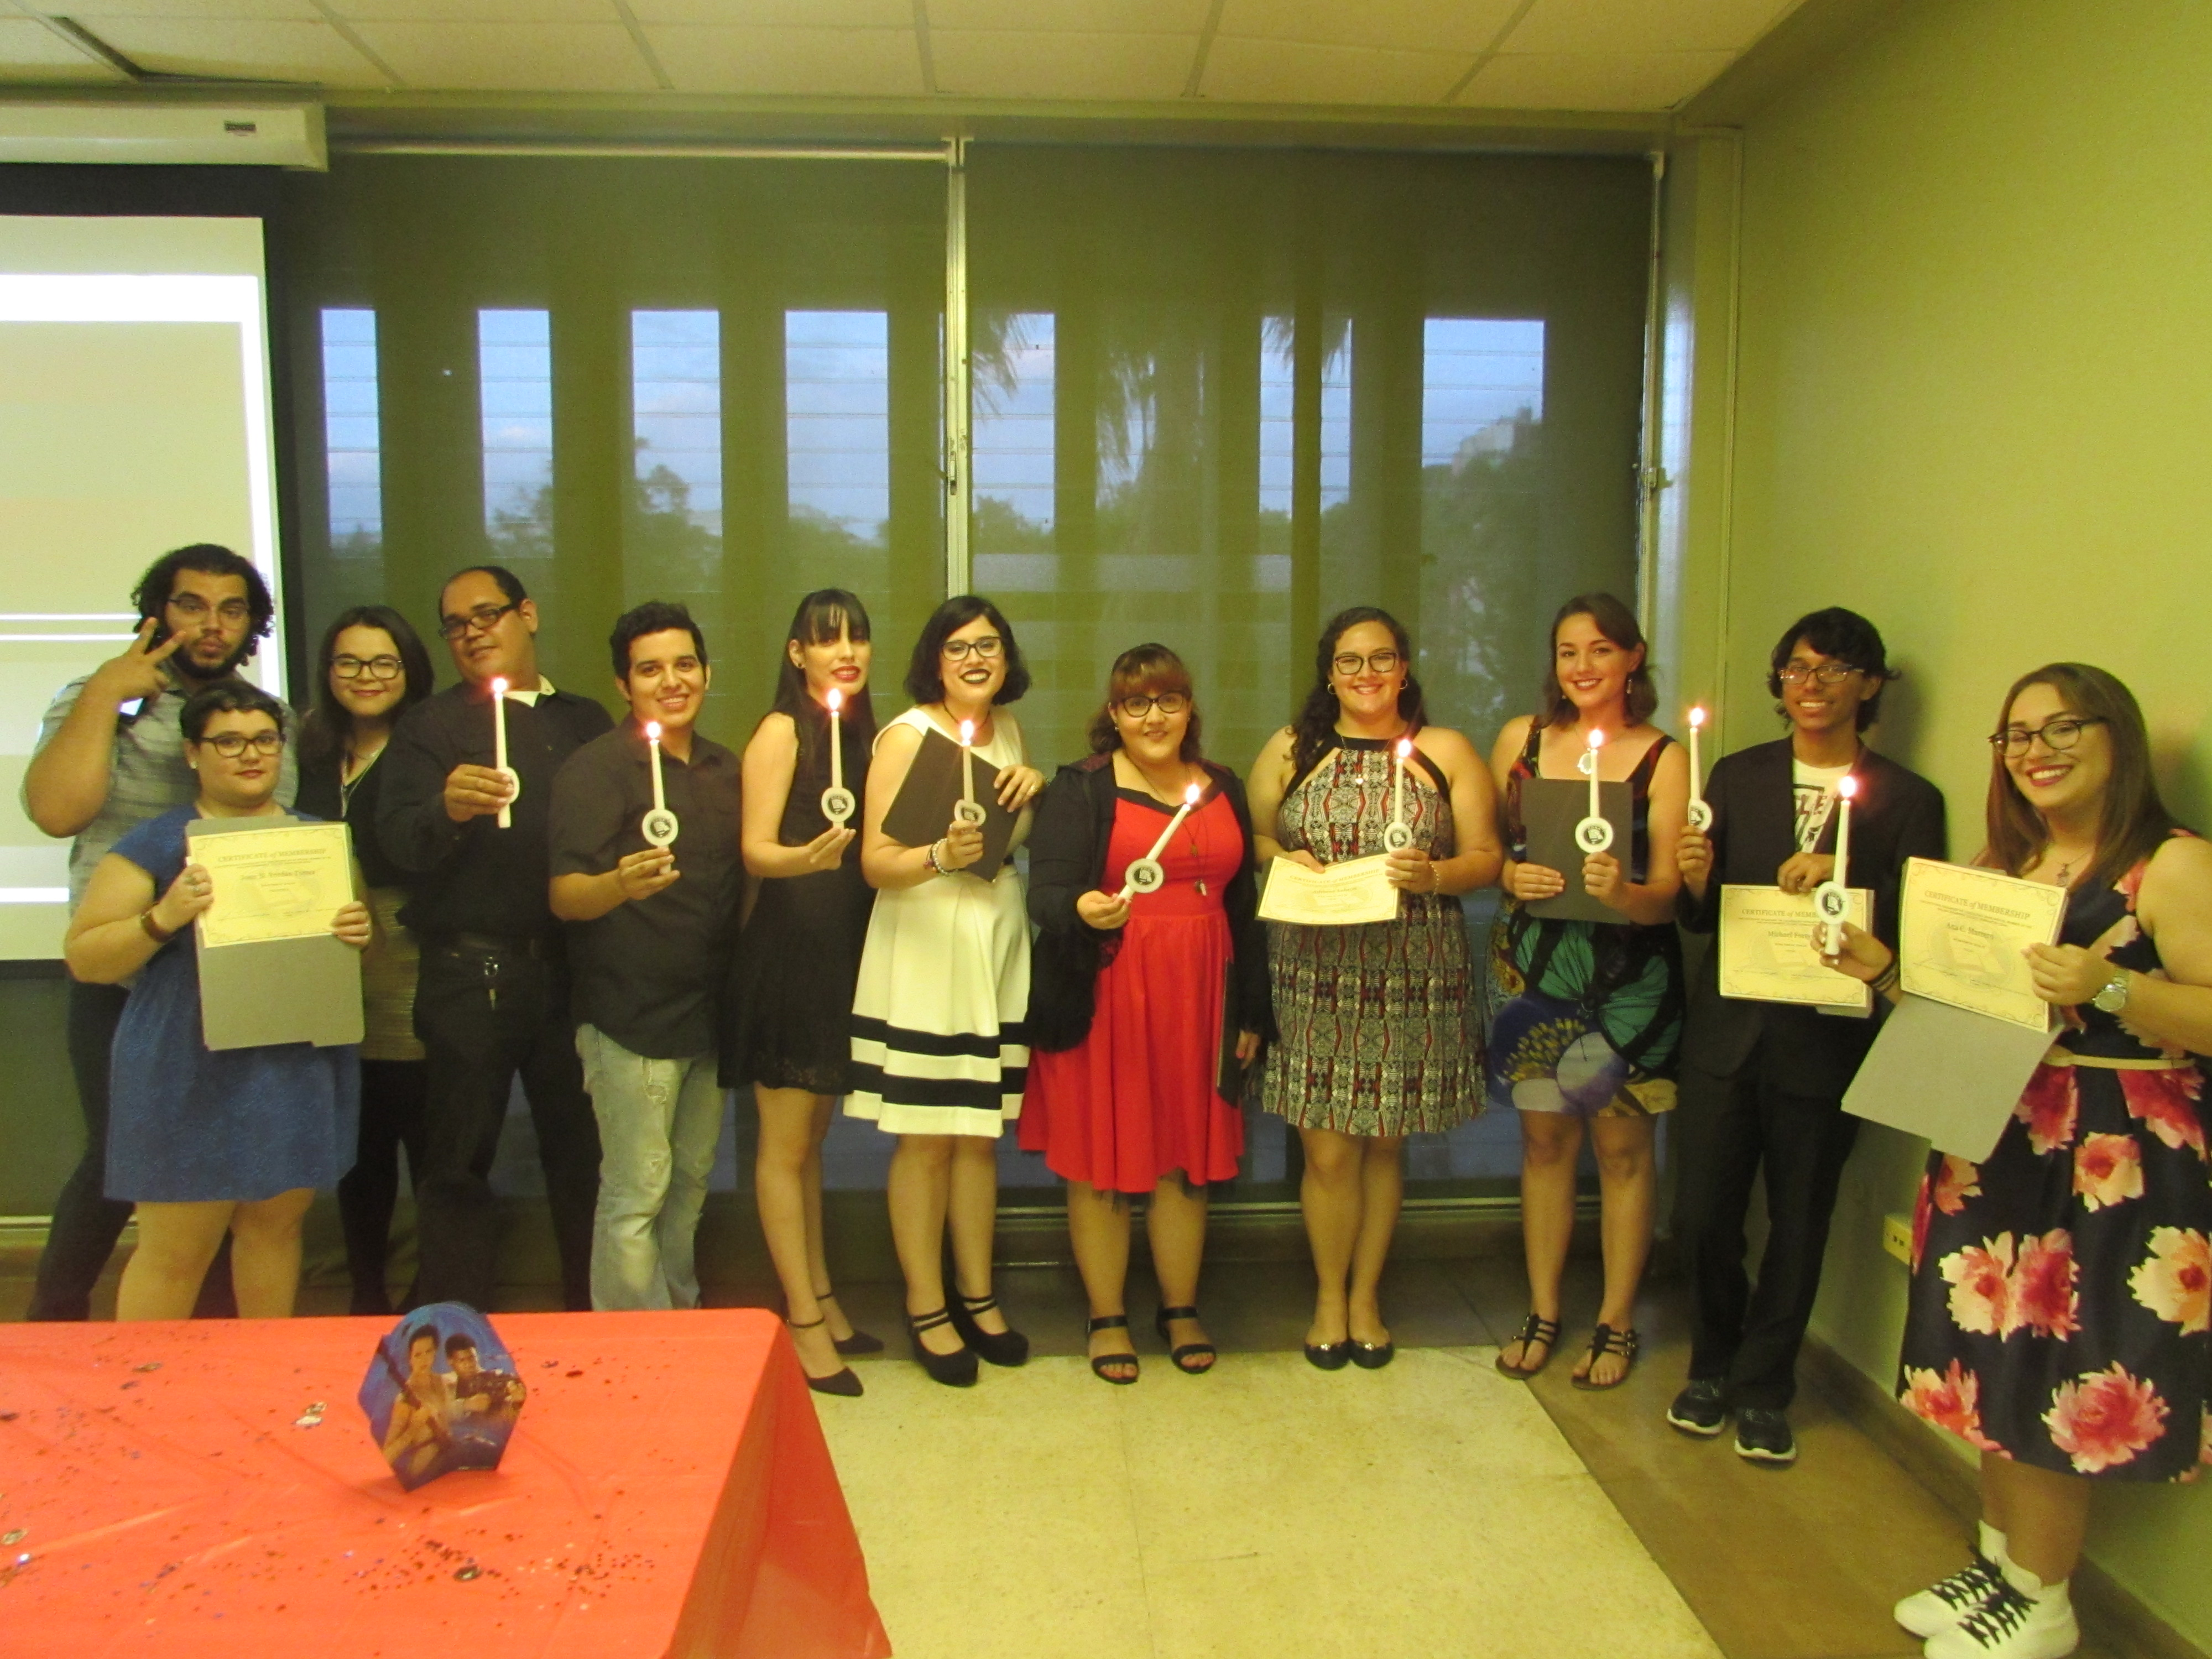 Attendants of the joint activity of May the 4th Be with you by EDSA & PCSA holding up lit candles and certificates, posing for the camera.